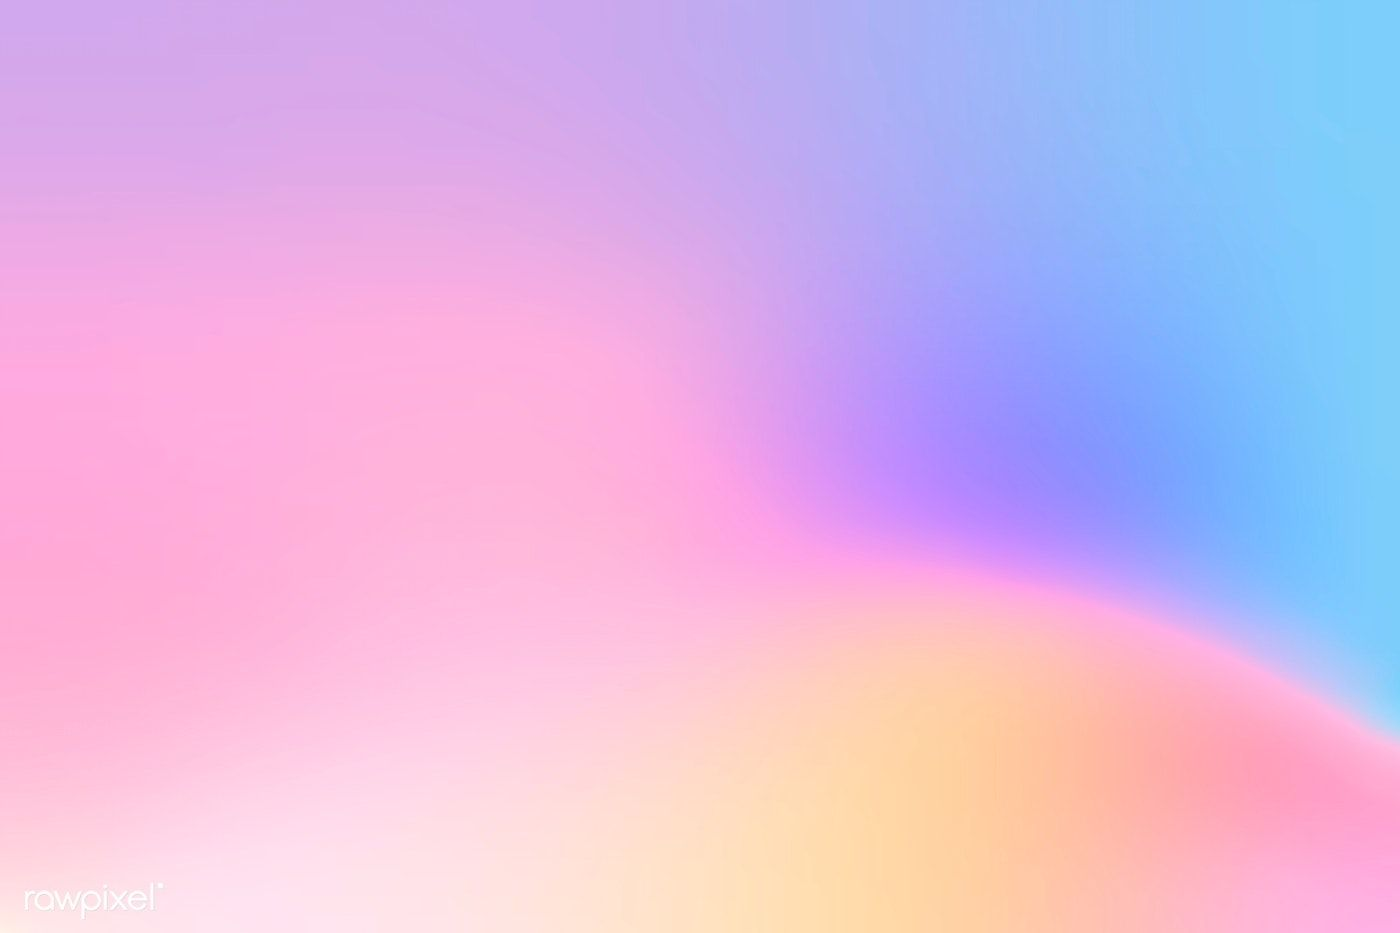 Colorful Holographic Gradient Background Design Free Image By Rawpixel Com Ningzk V